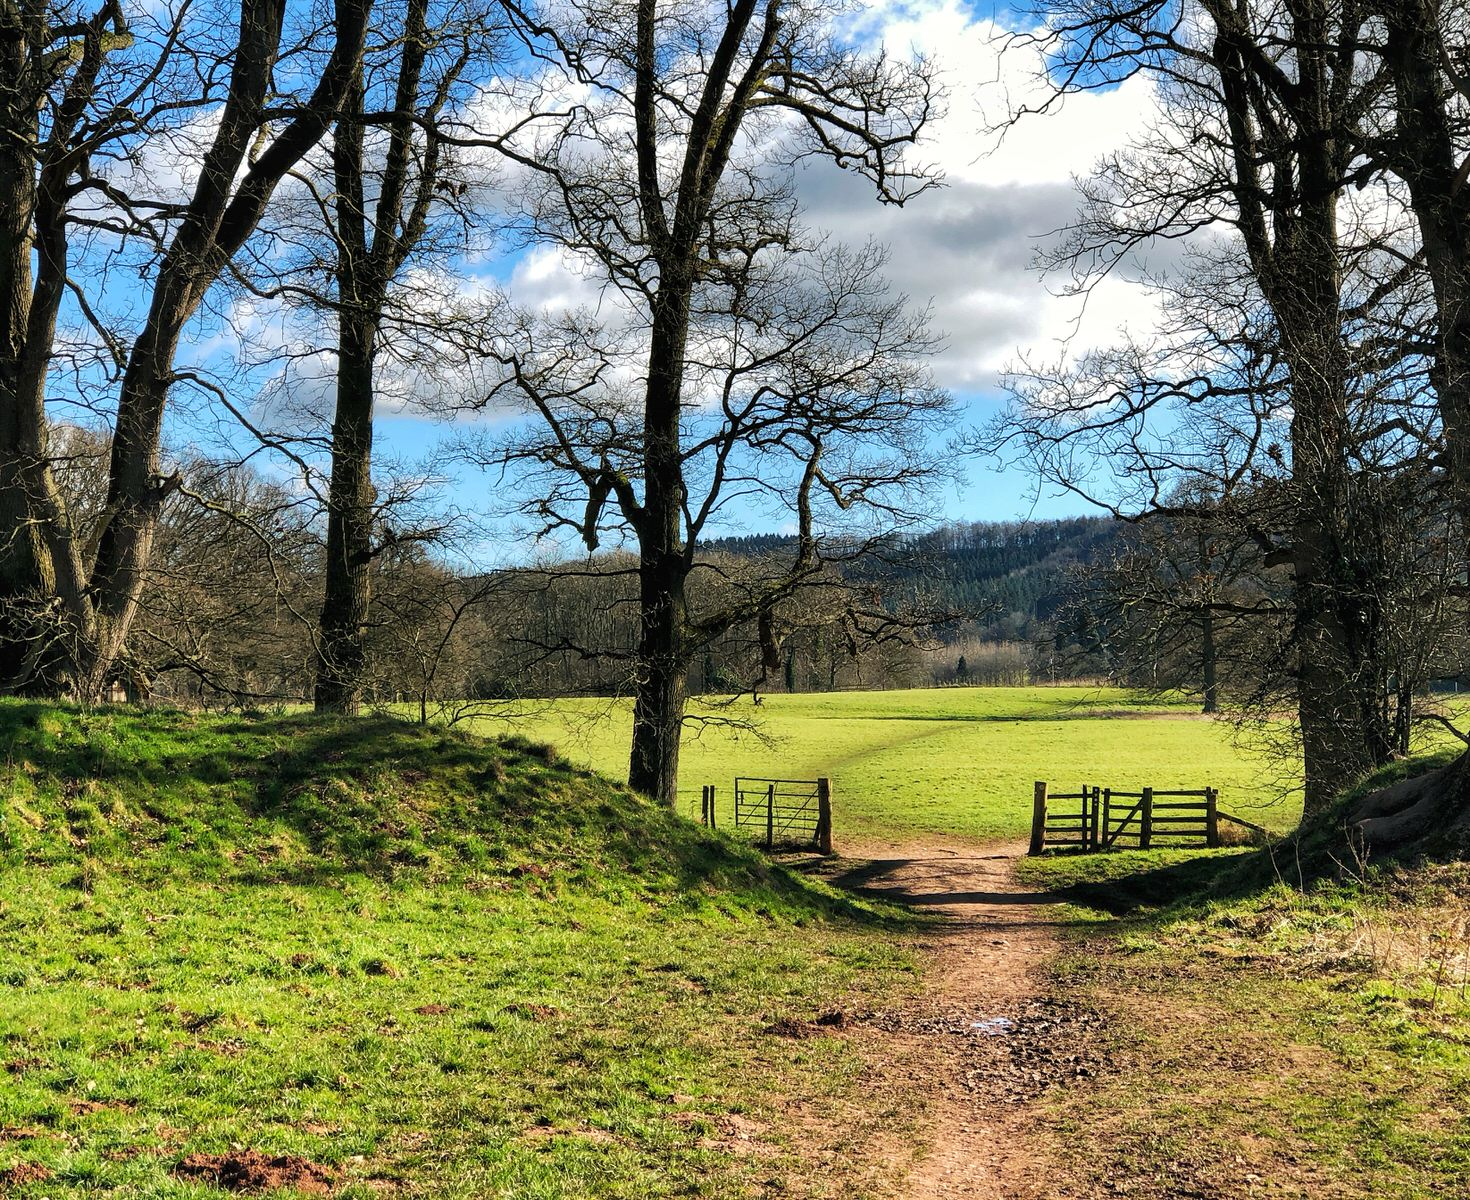 Green space in Herefordshire countryside, early spring